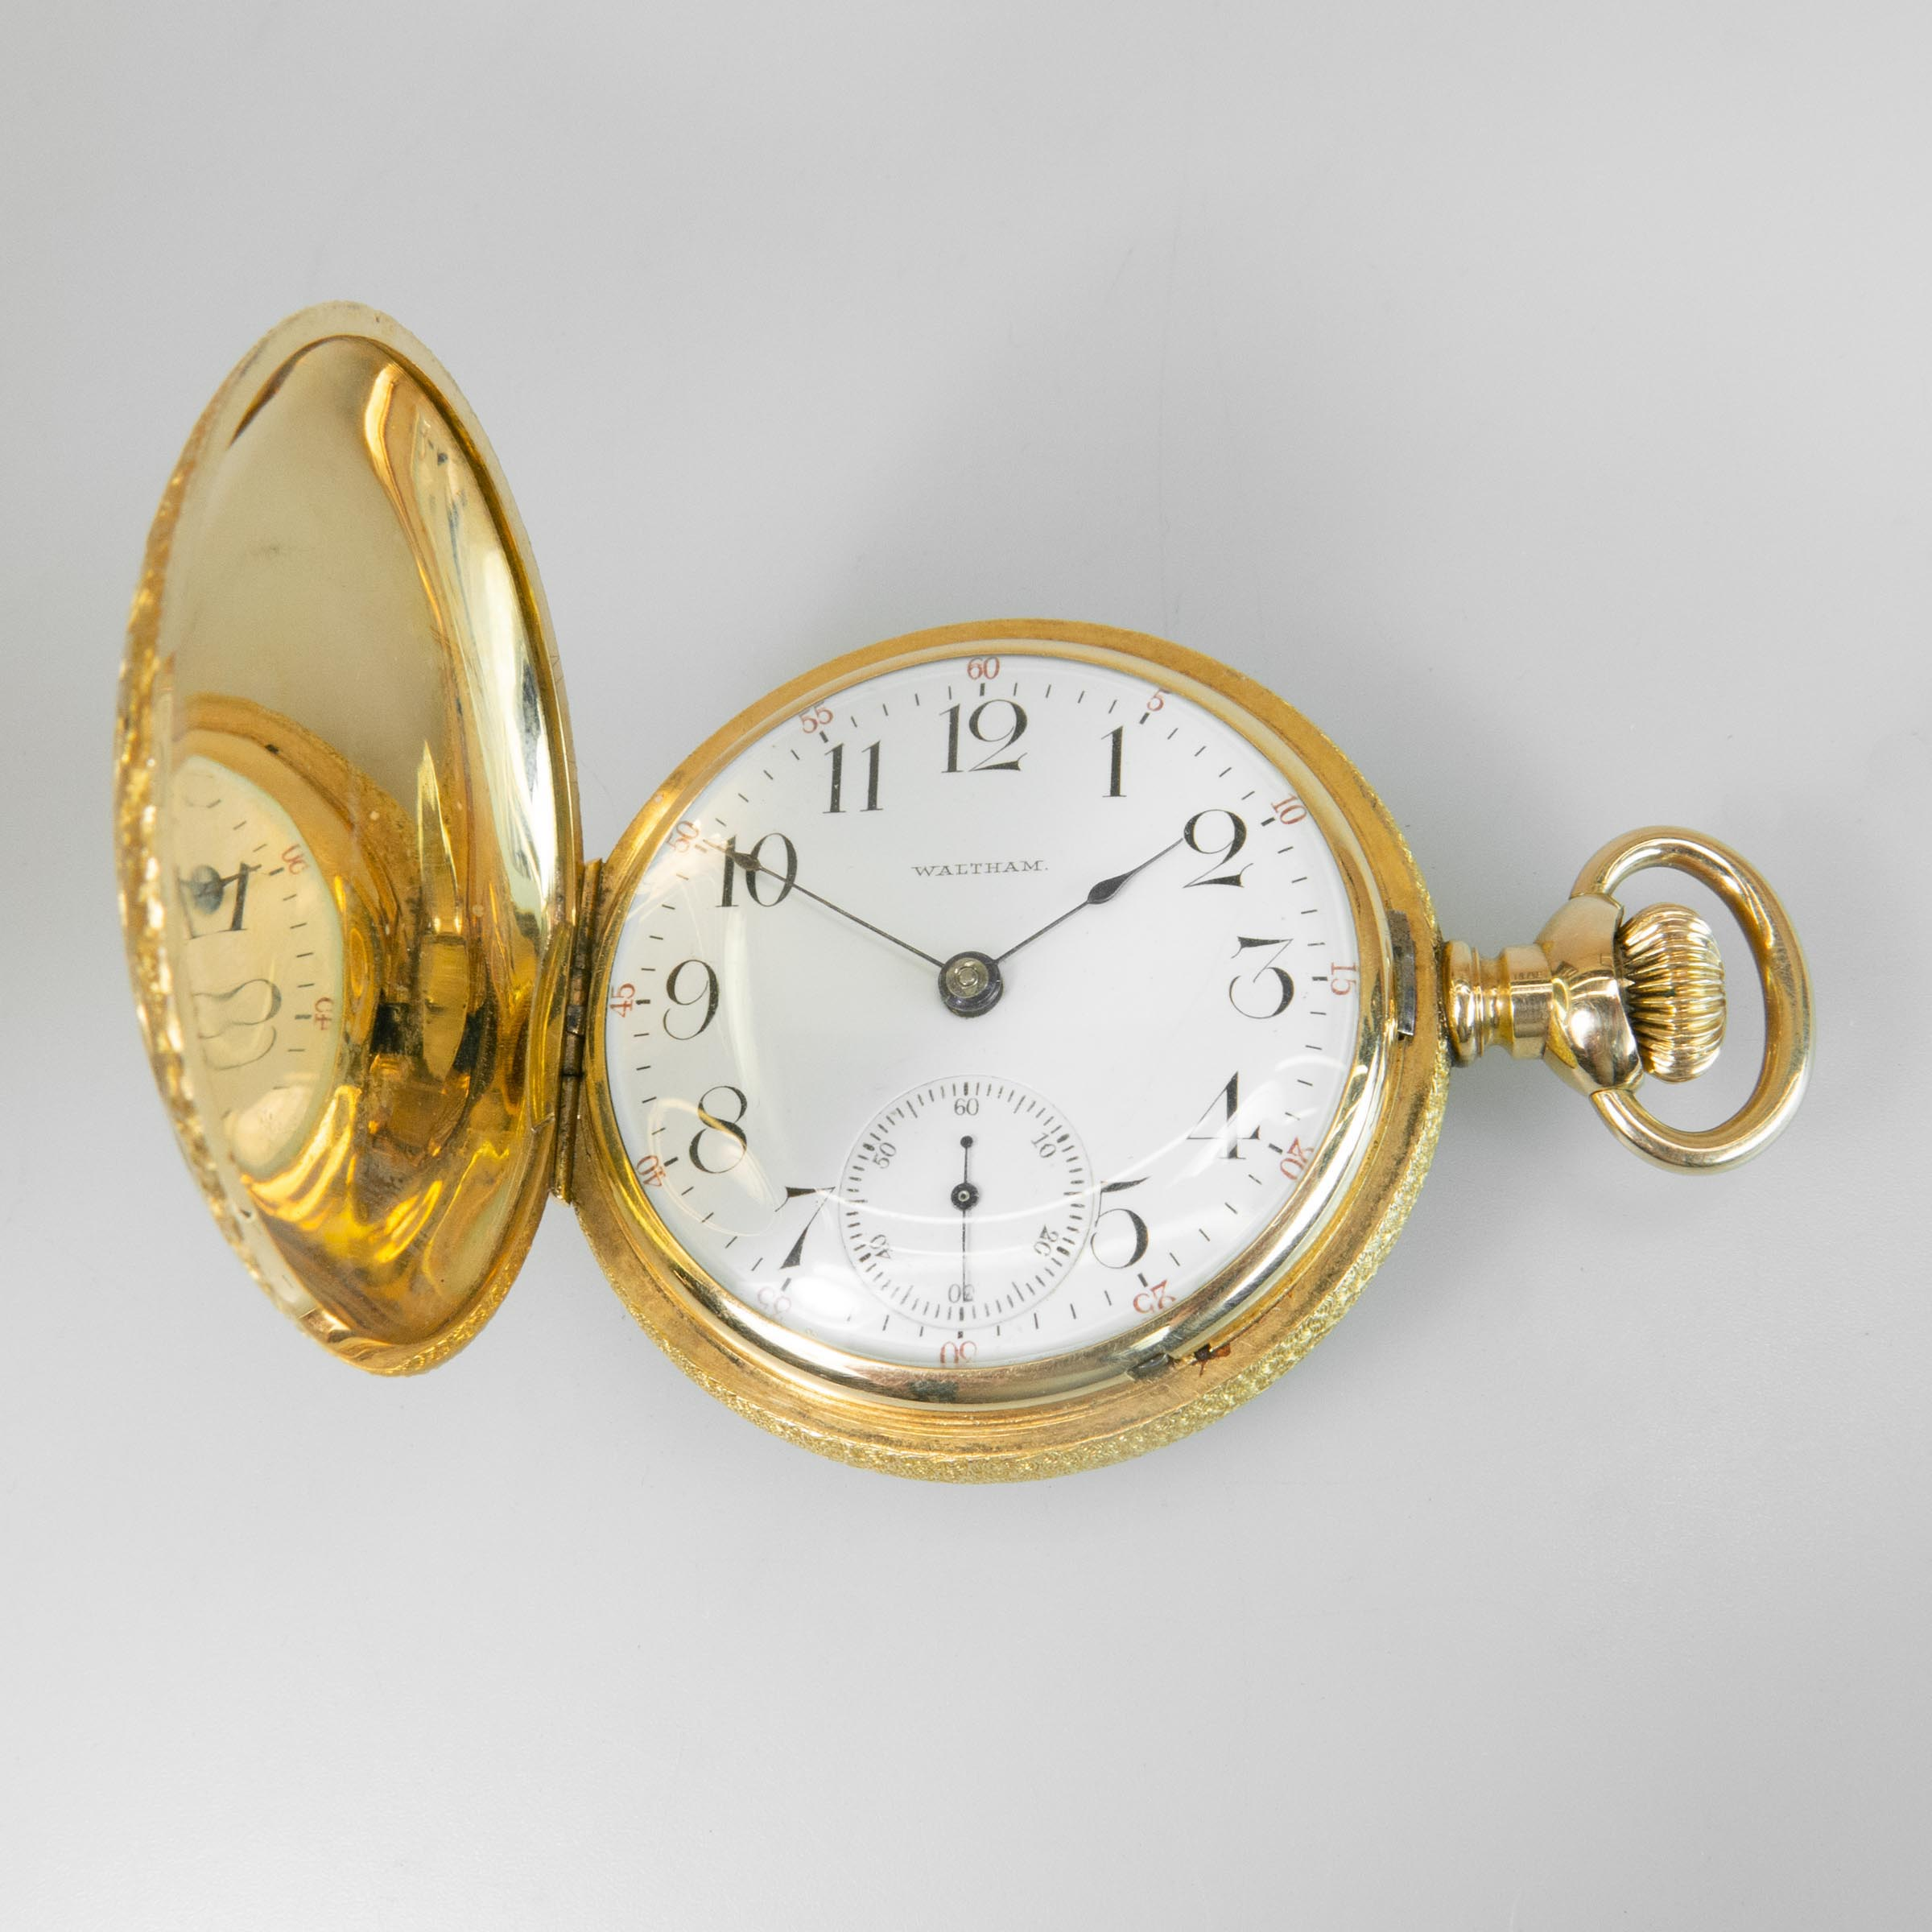 Waltham Stem Wind Pocket Watch